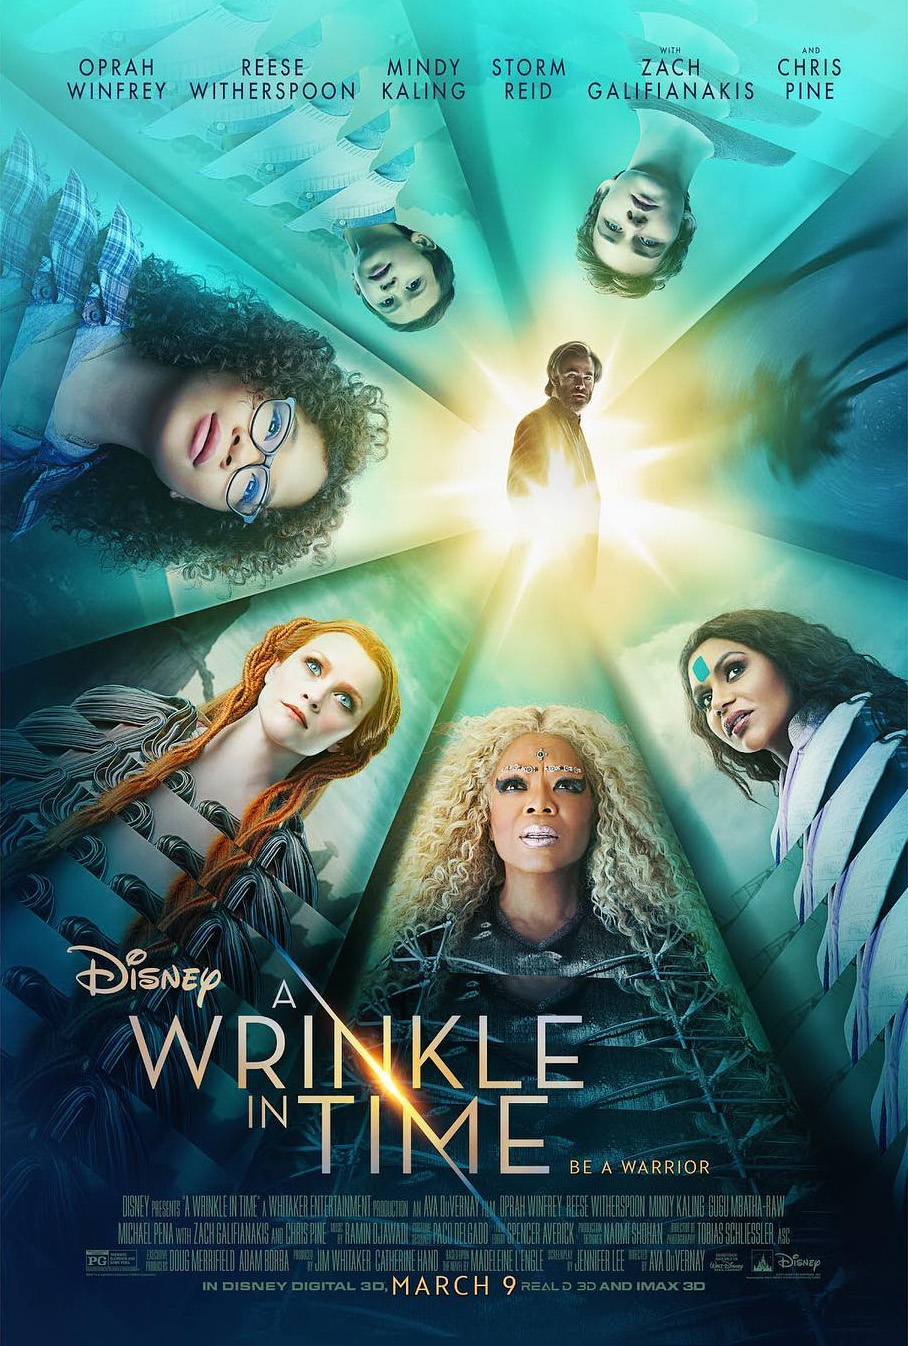 A Wrinkle in Time – Behind the Scenes